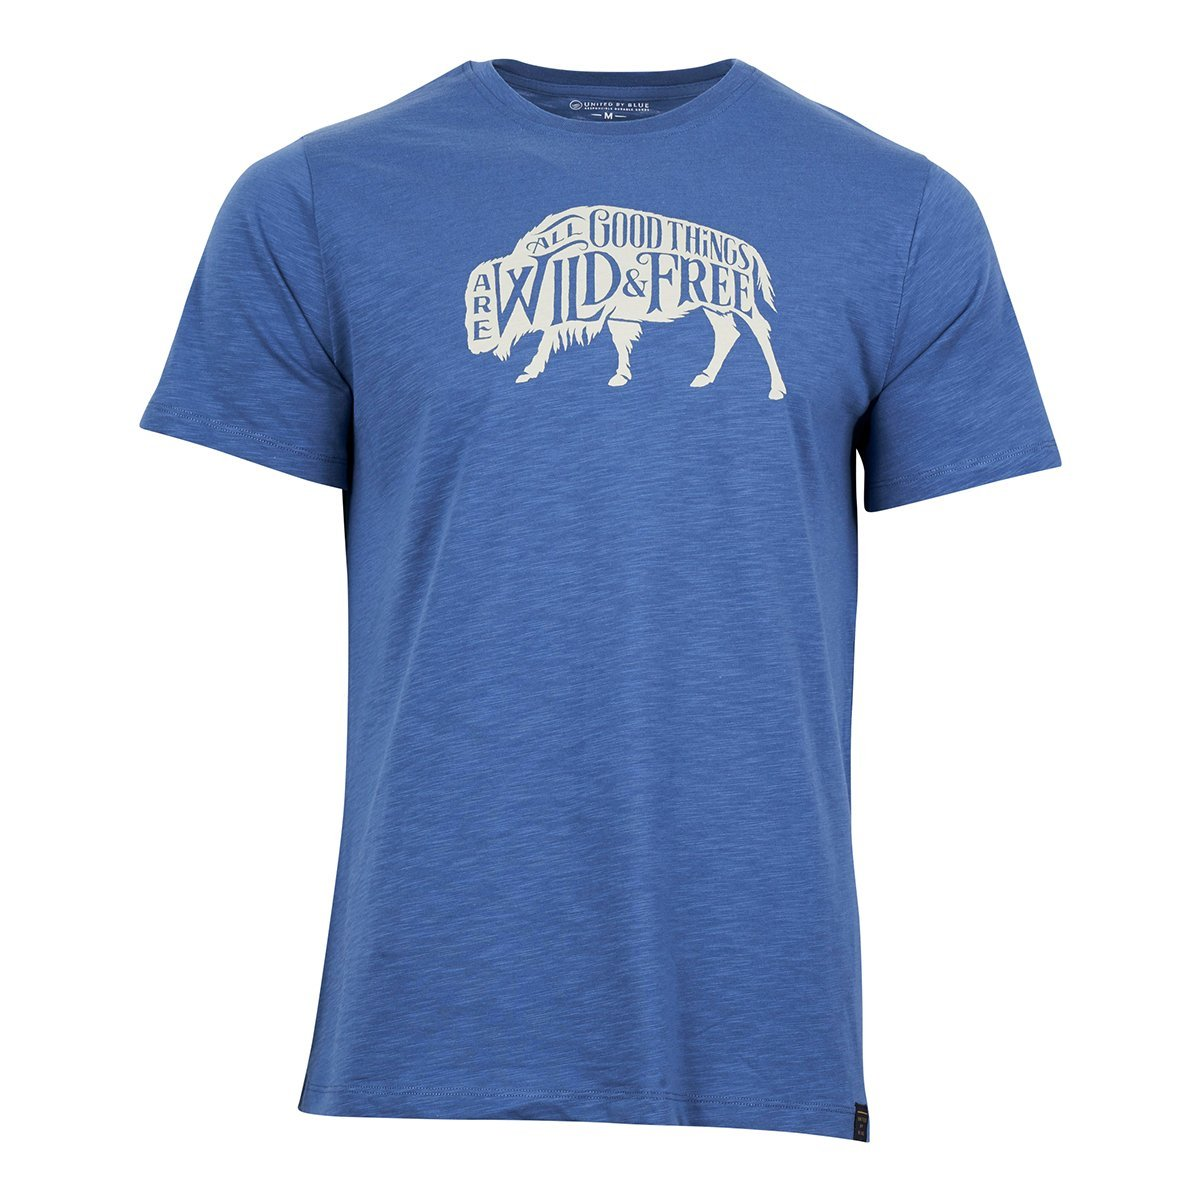 United By Blue | Men's Graphic T-Shirt | Organic Cotton T-Shirt | Wild & Free - Blue